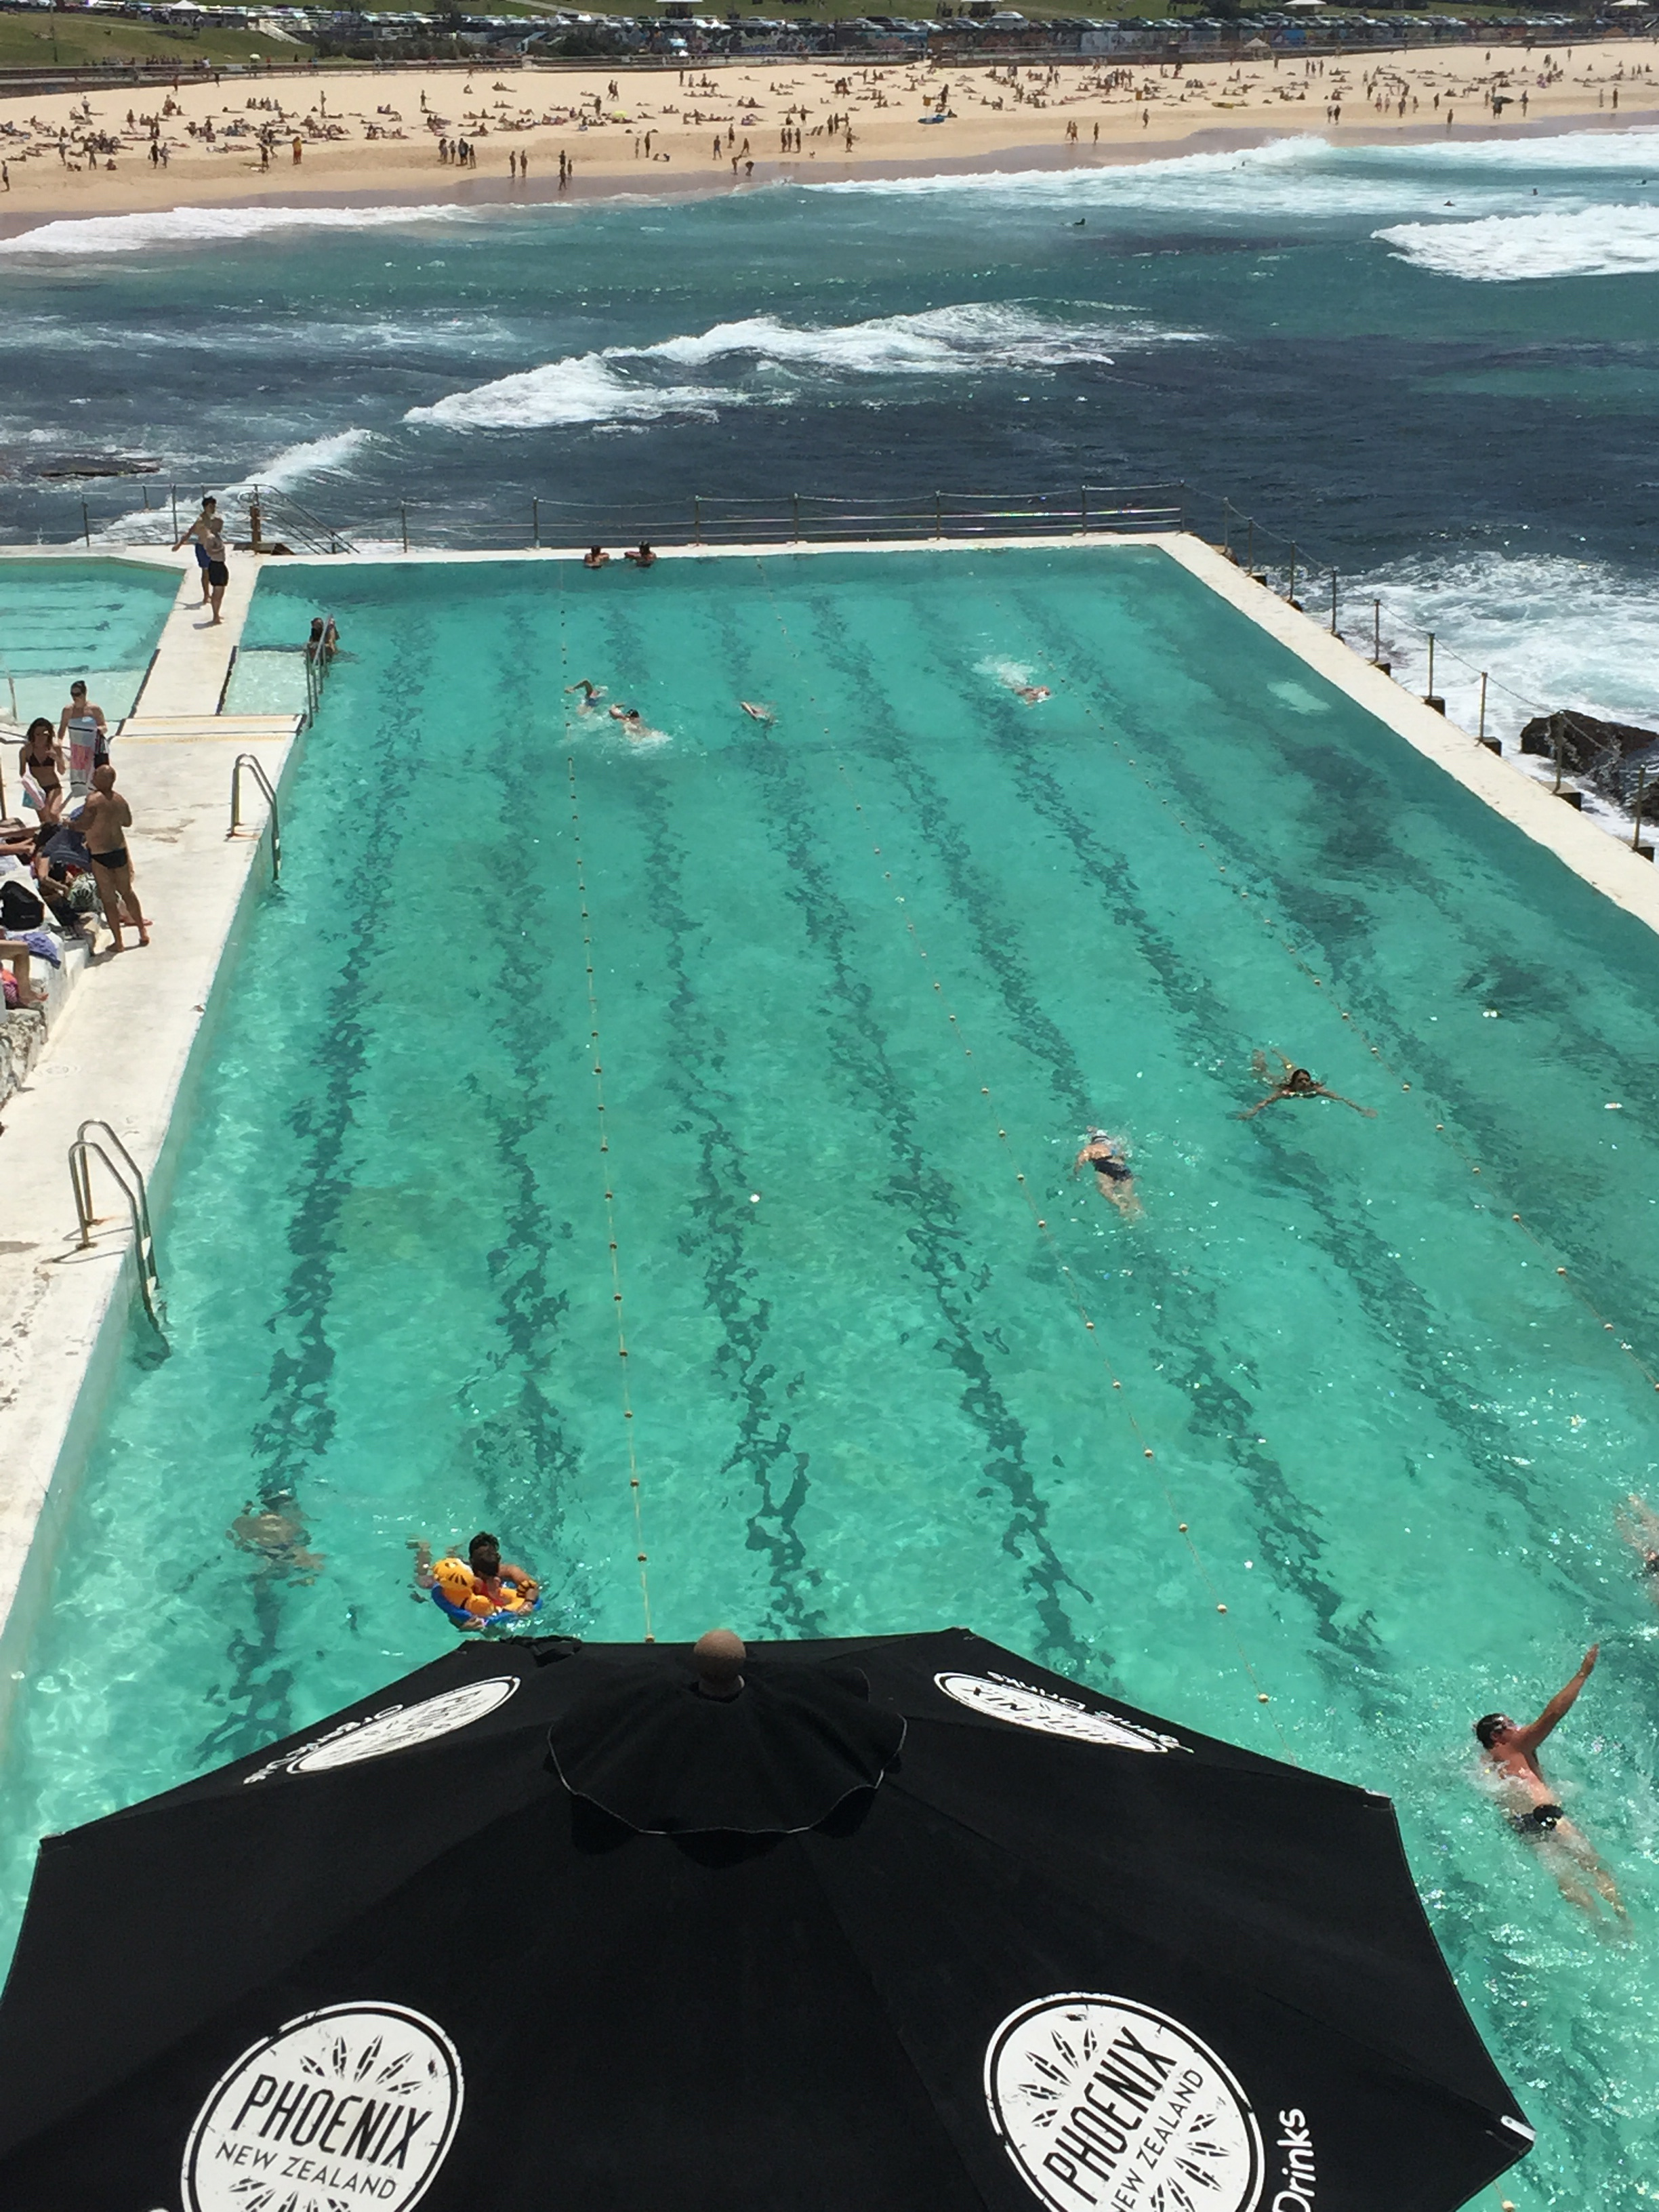 Swimming in Bondi Icebergs pool before going to work